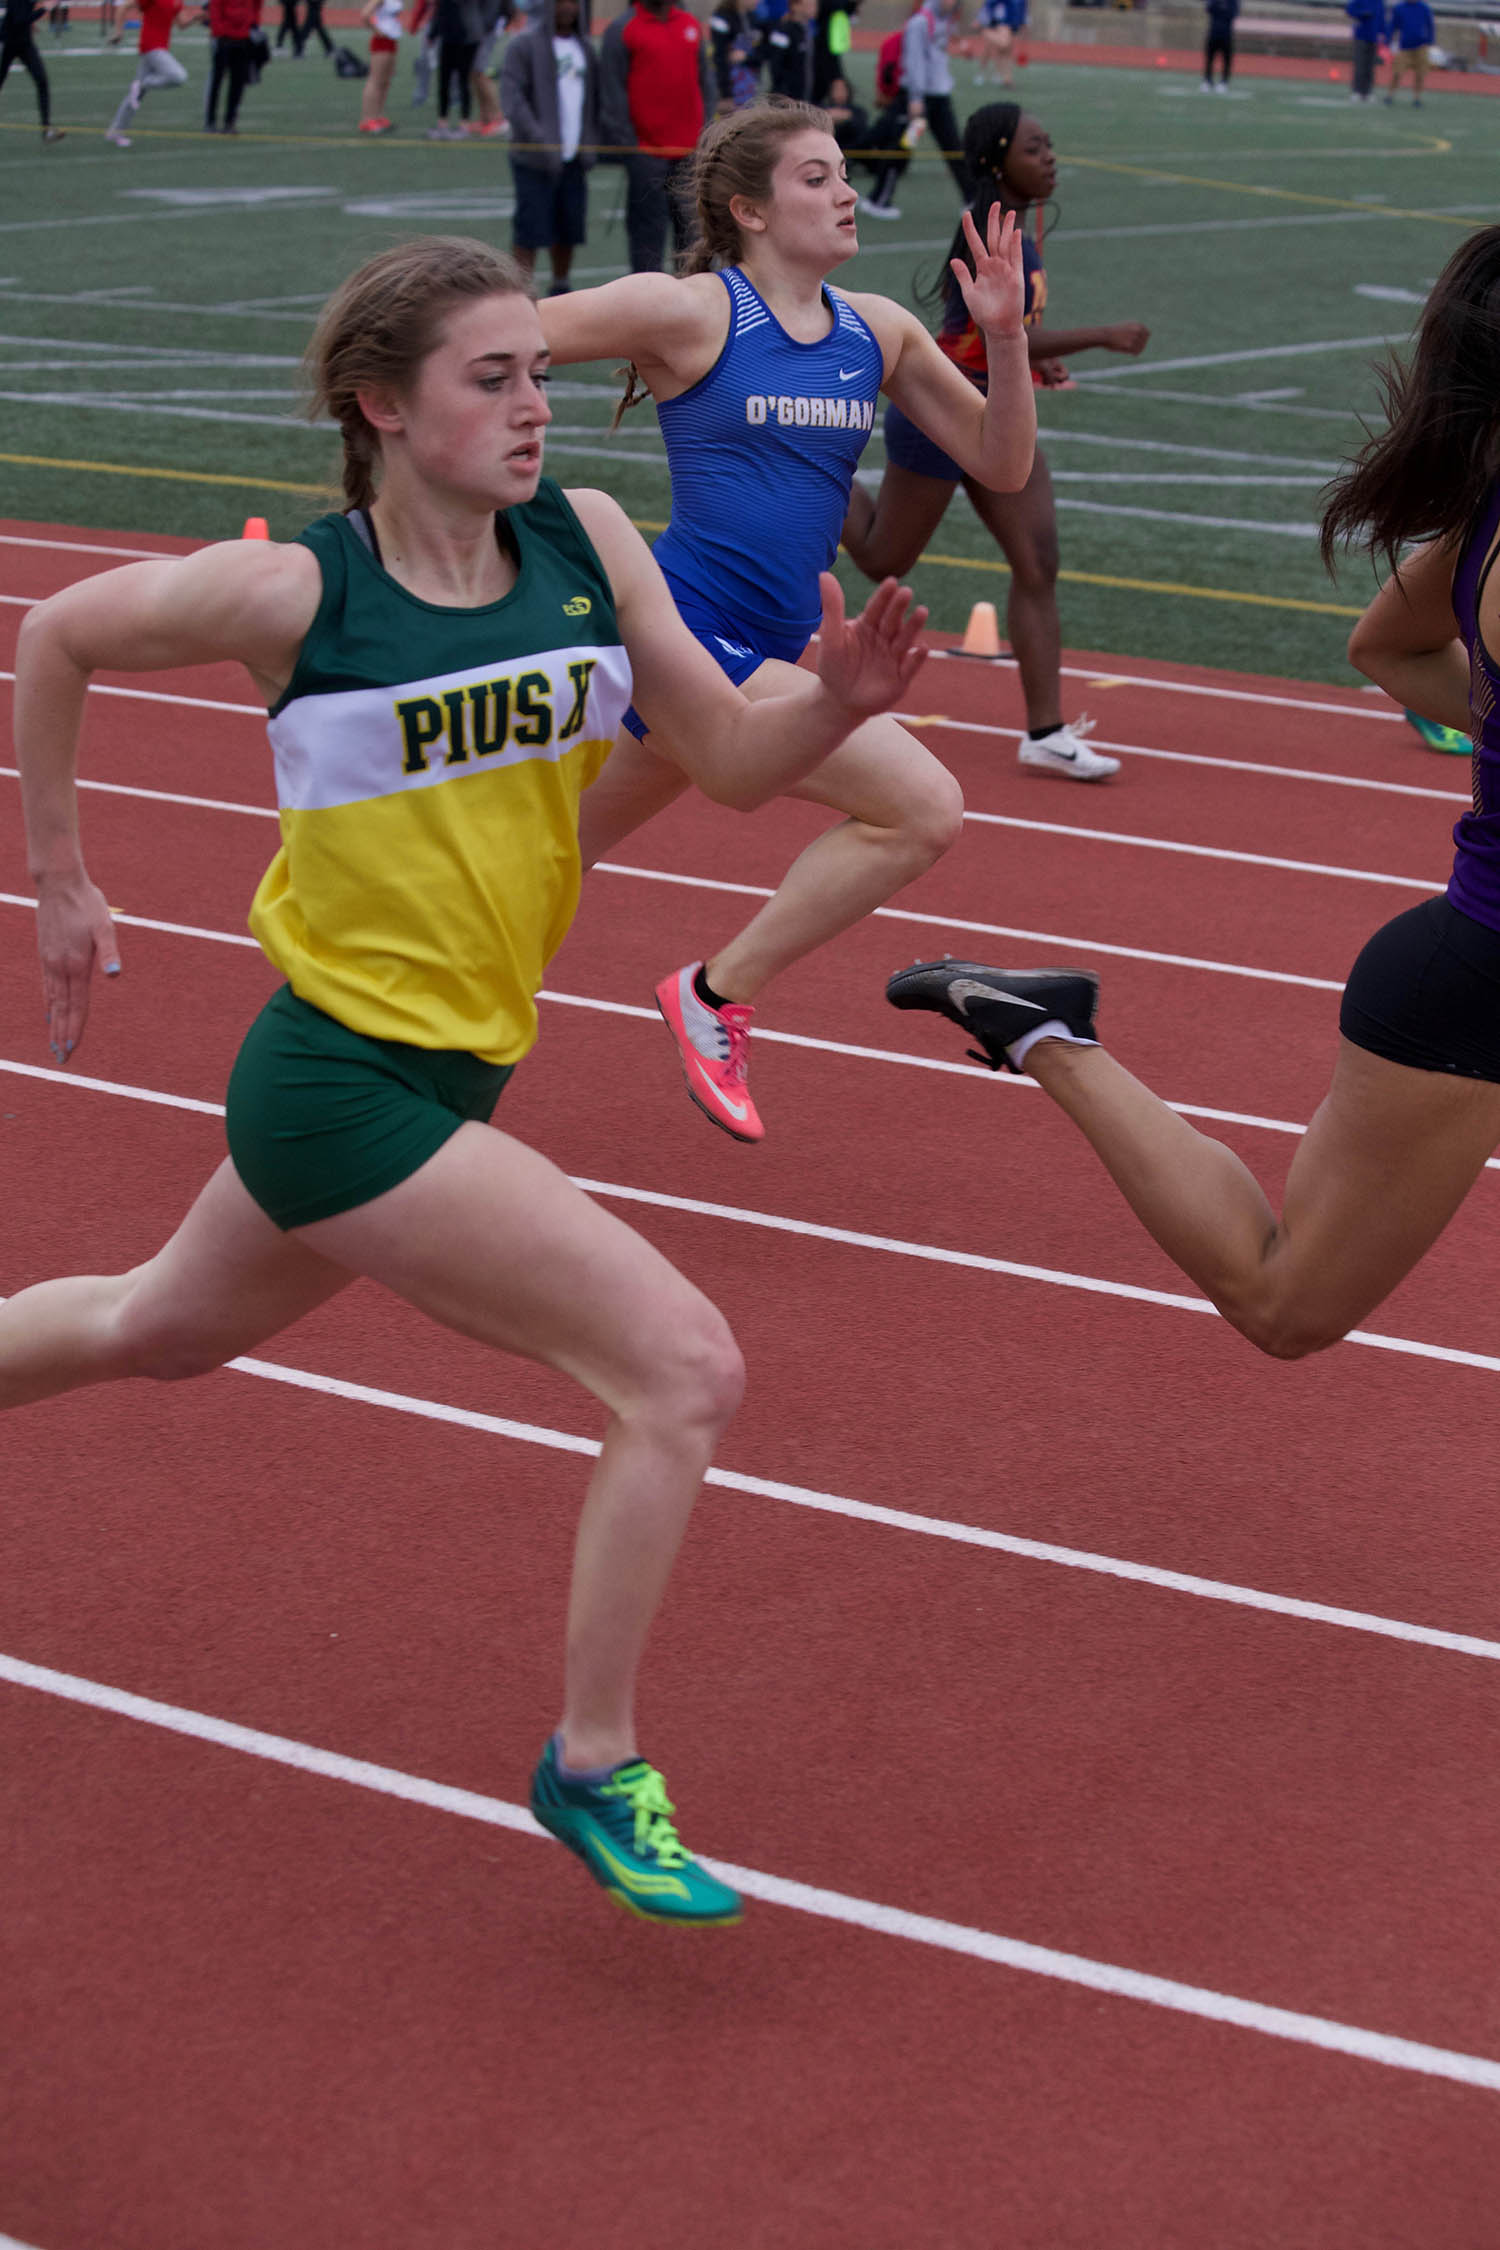 Track and Field at Lincoln Pius X Catholic High School